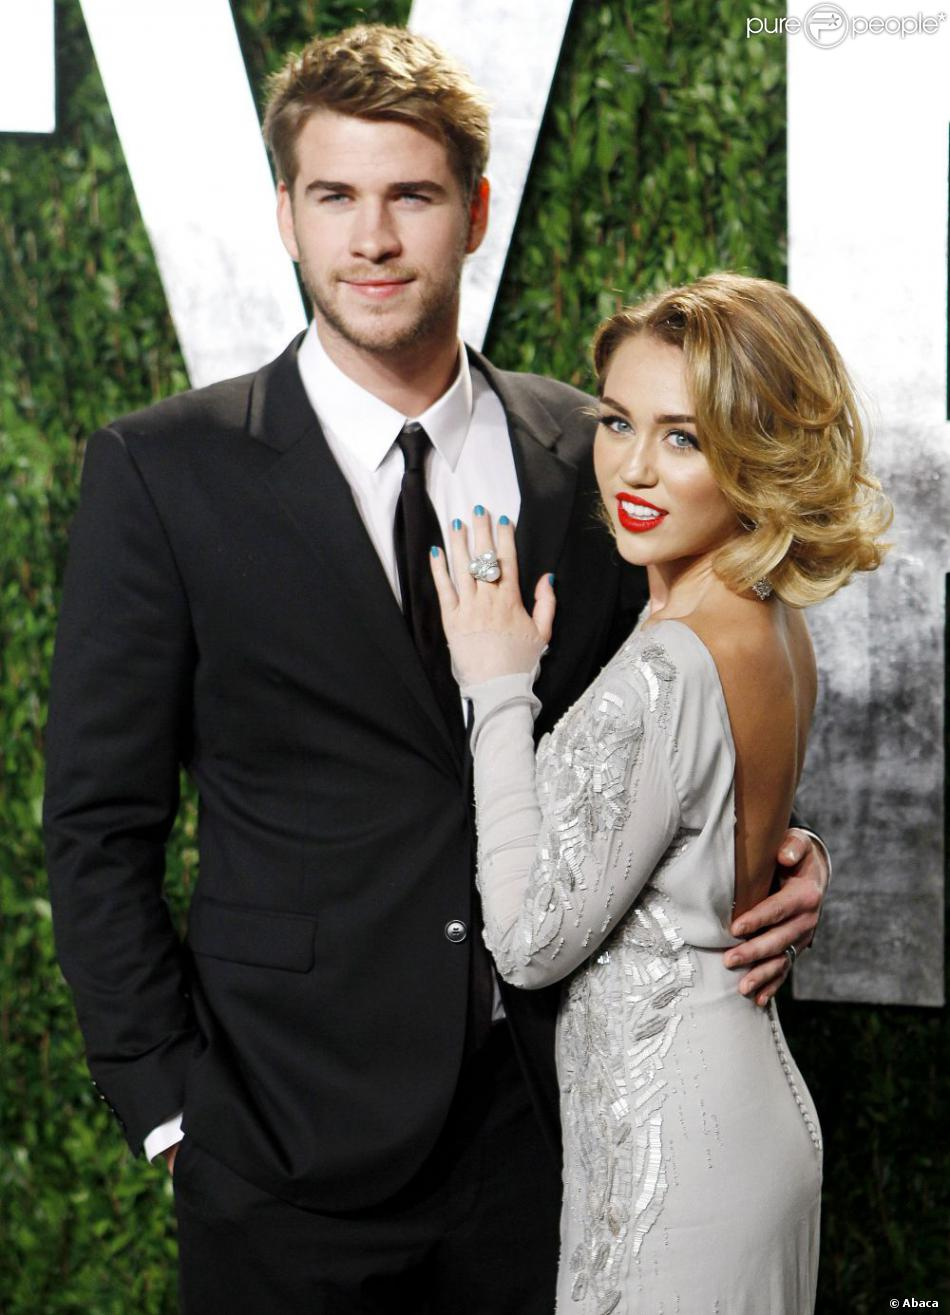 Miley Cyrus, Liam Hemsworth attending the 2012 Vanity Fair Oscar Party held at the Sunset Towers Hotel, West Hollywood, Los Angeles, CA, USA on February 26, 2012. Photo by Broadimage/ABACAPRESS.COM27/02/2012 - Los Angeles